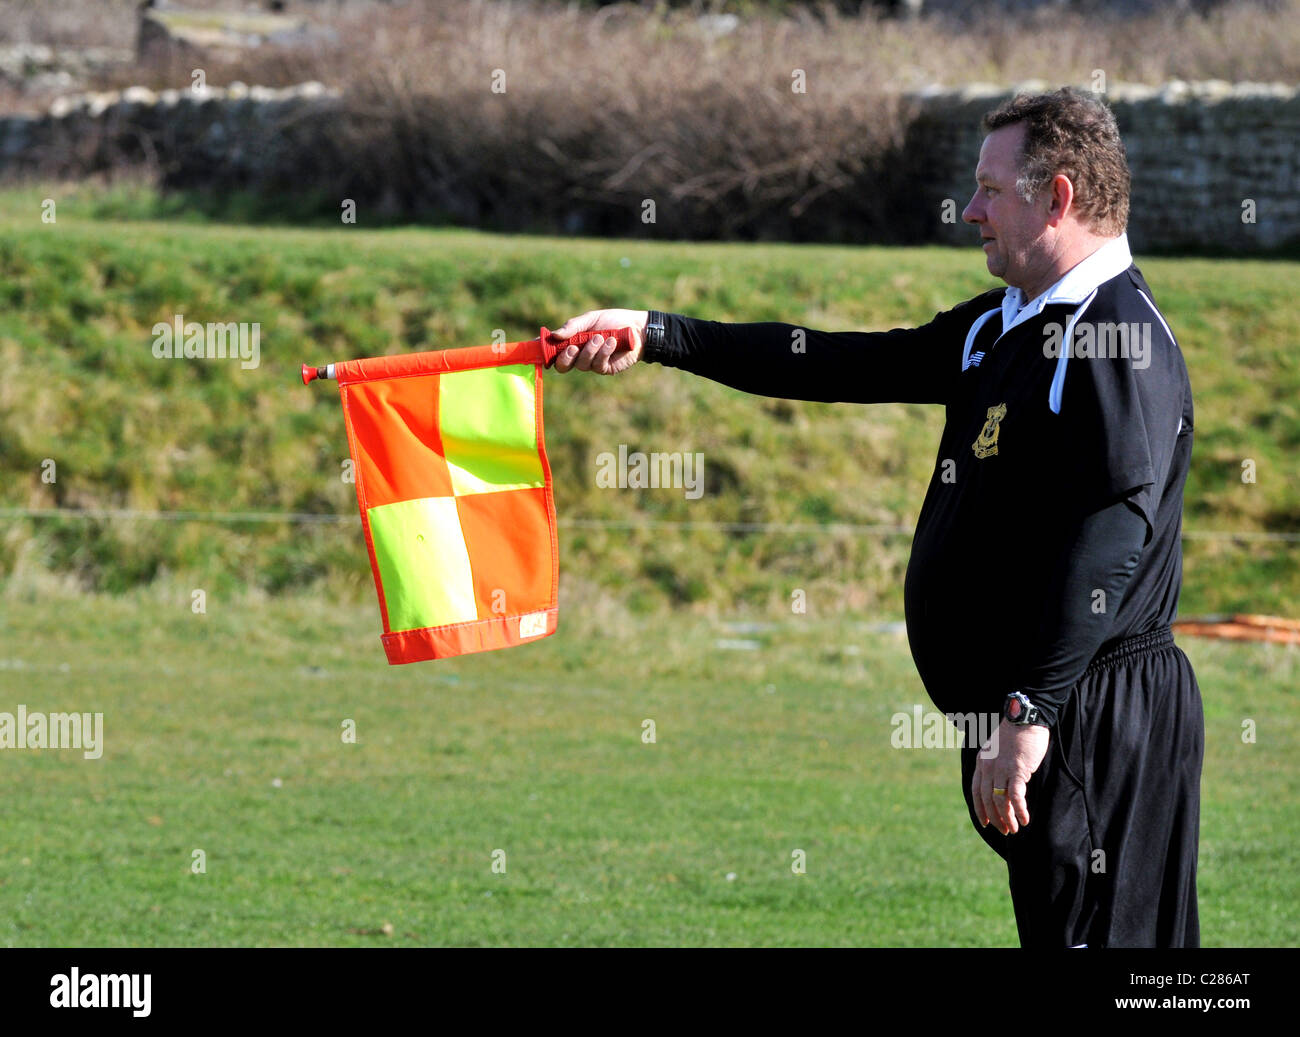 Linesman, football linesman, referee's assistant Stock